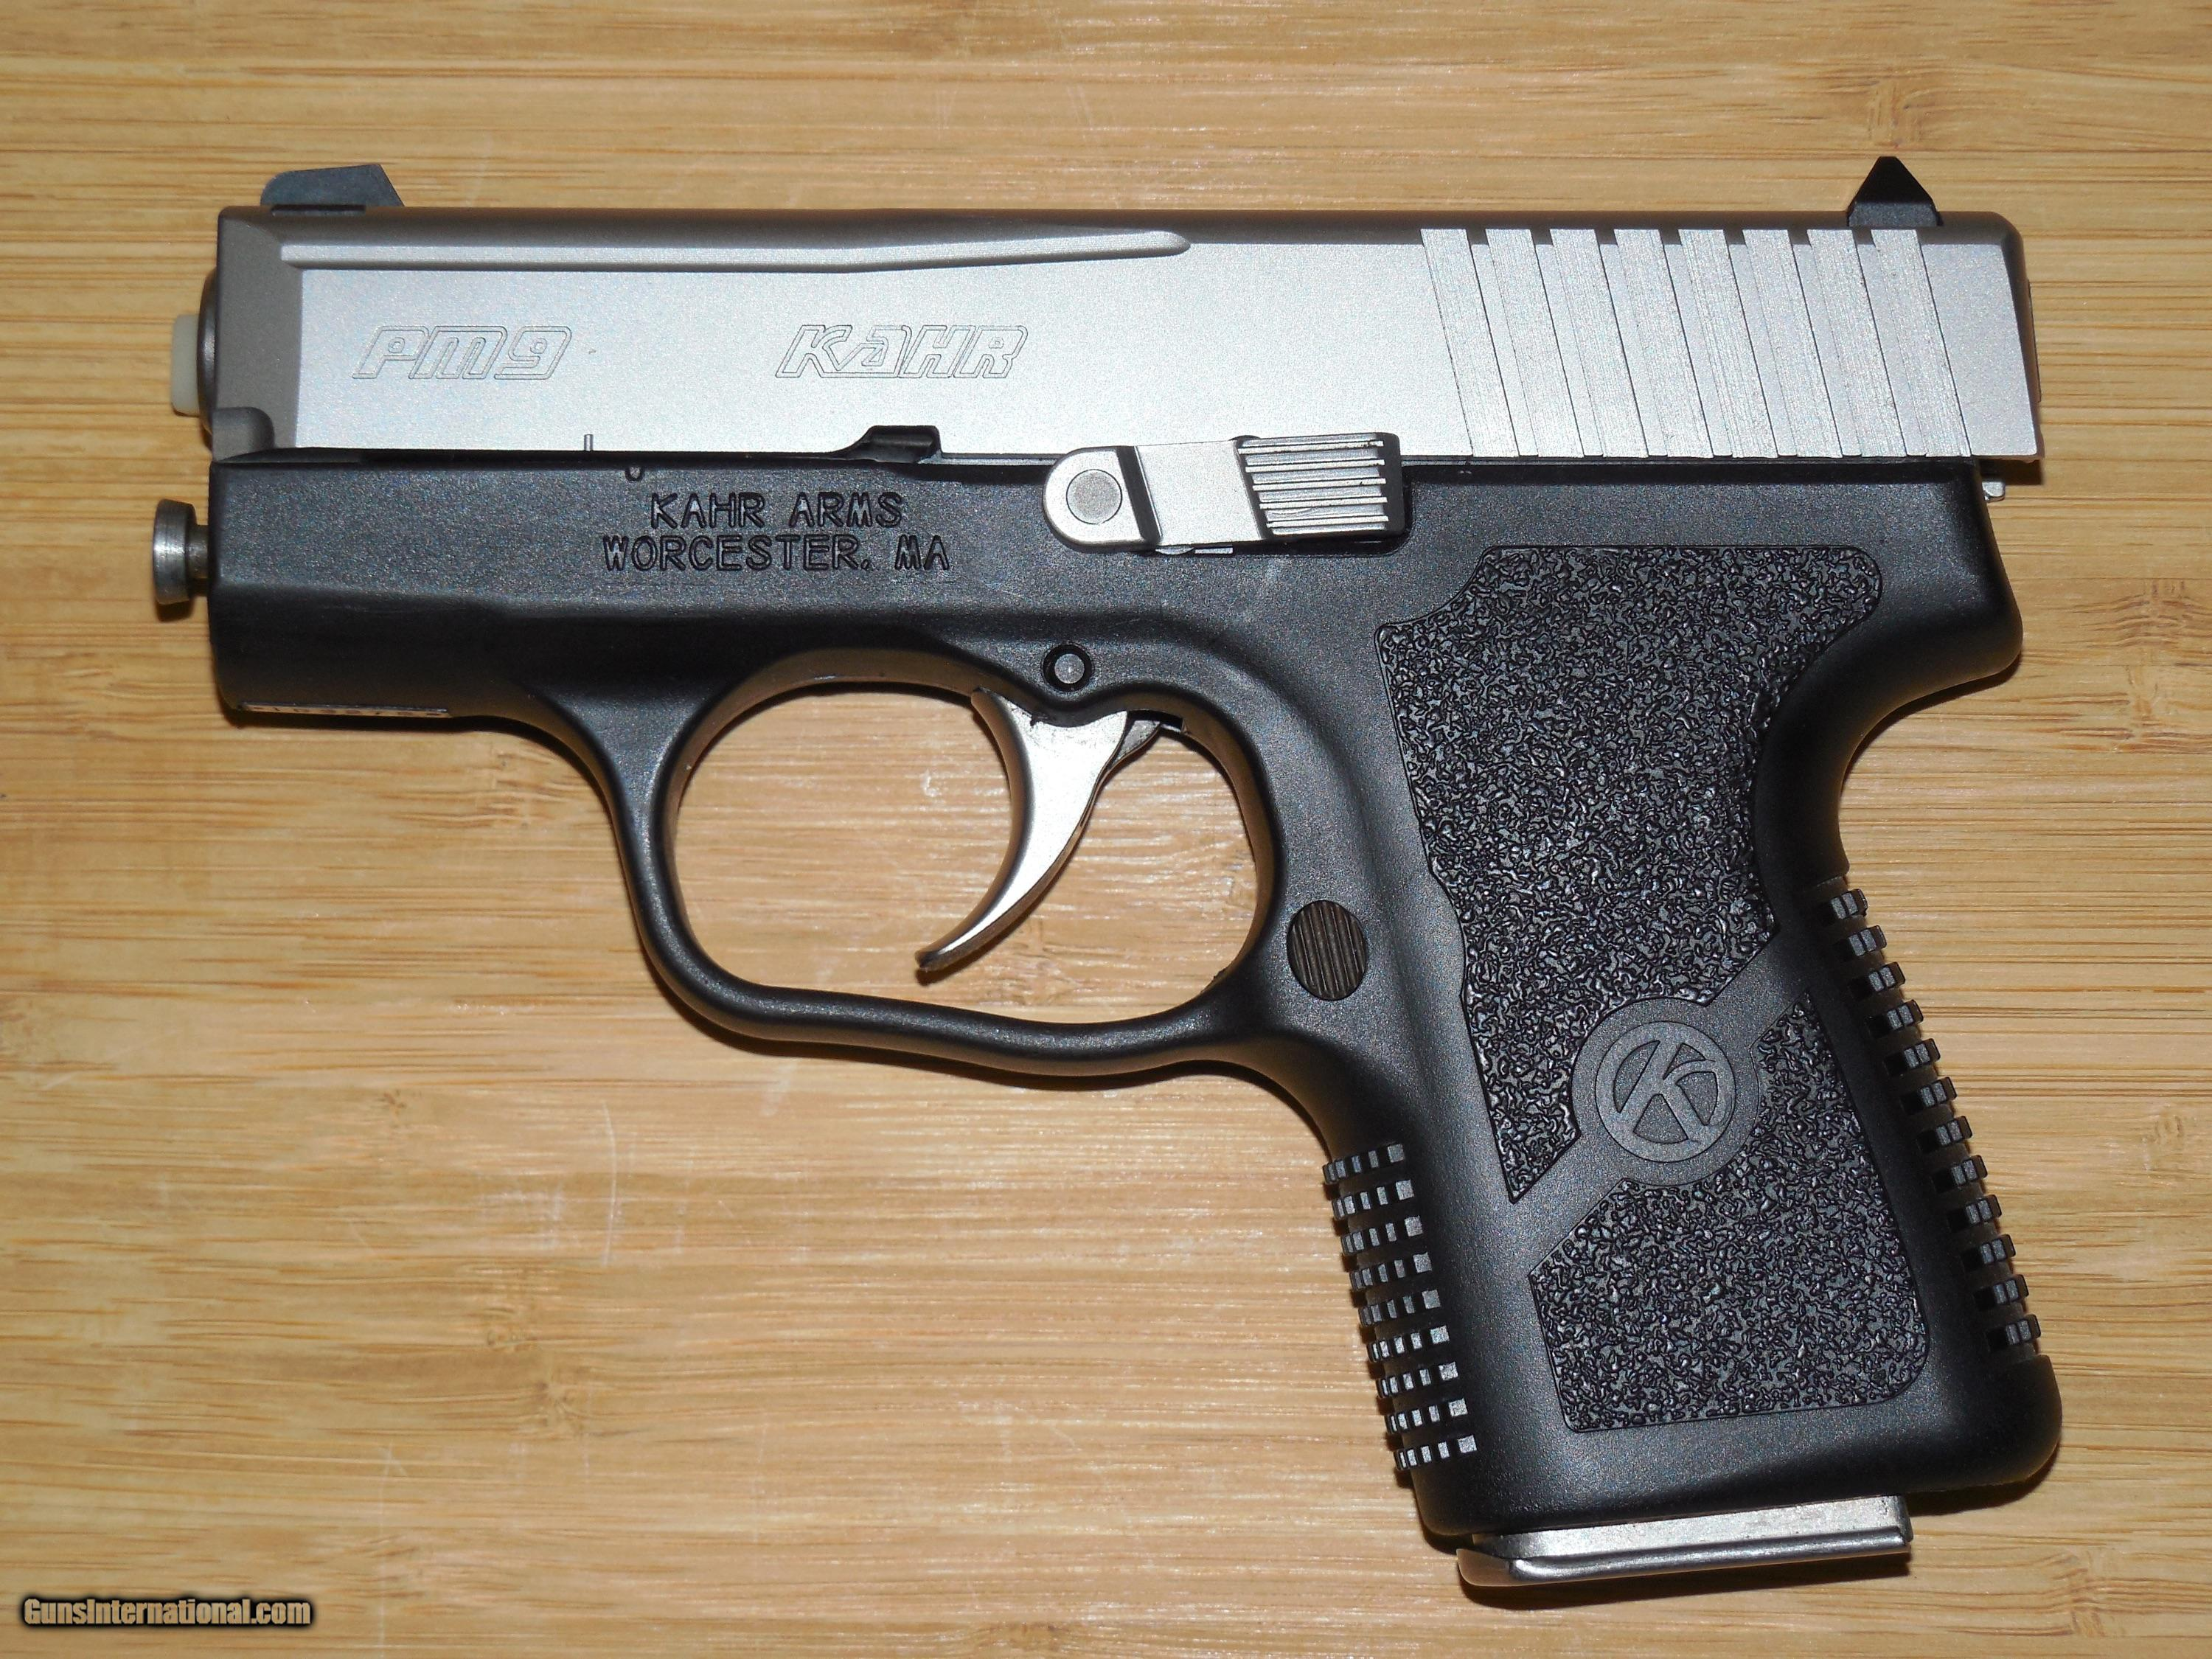 KAHR ARMS PM-9 SUB-COMPACT HIGH-GRADE 9 MM PISTOL